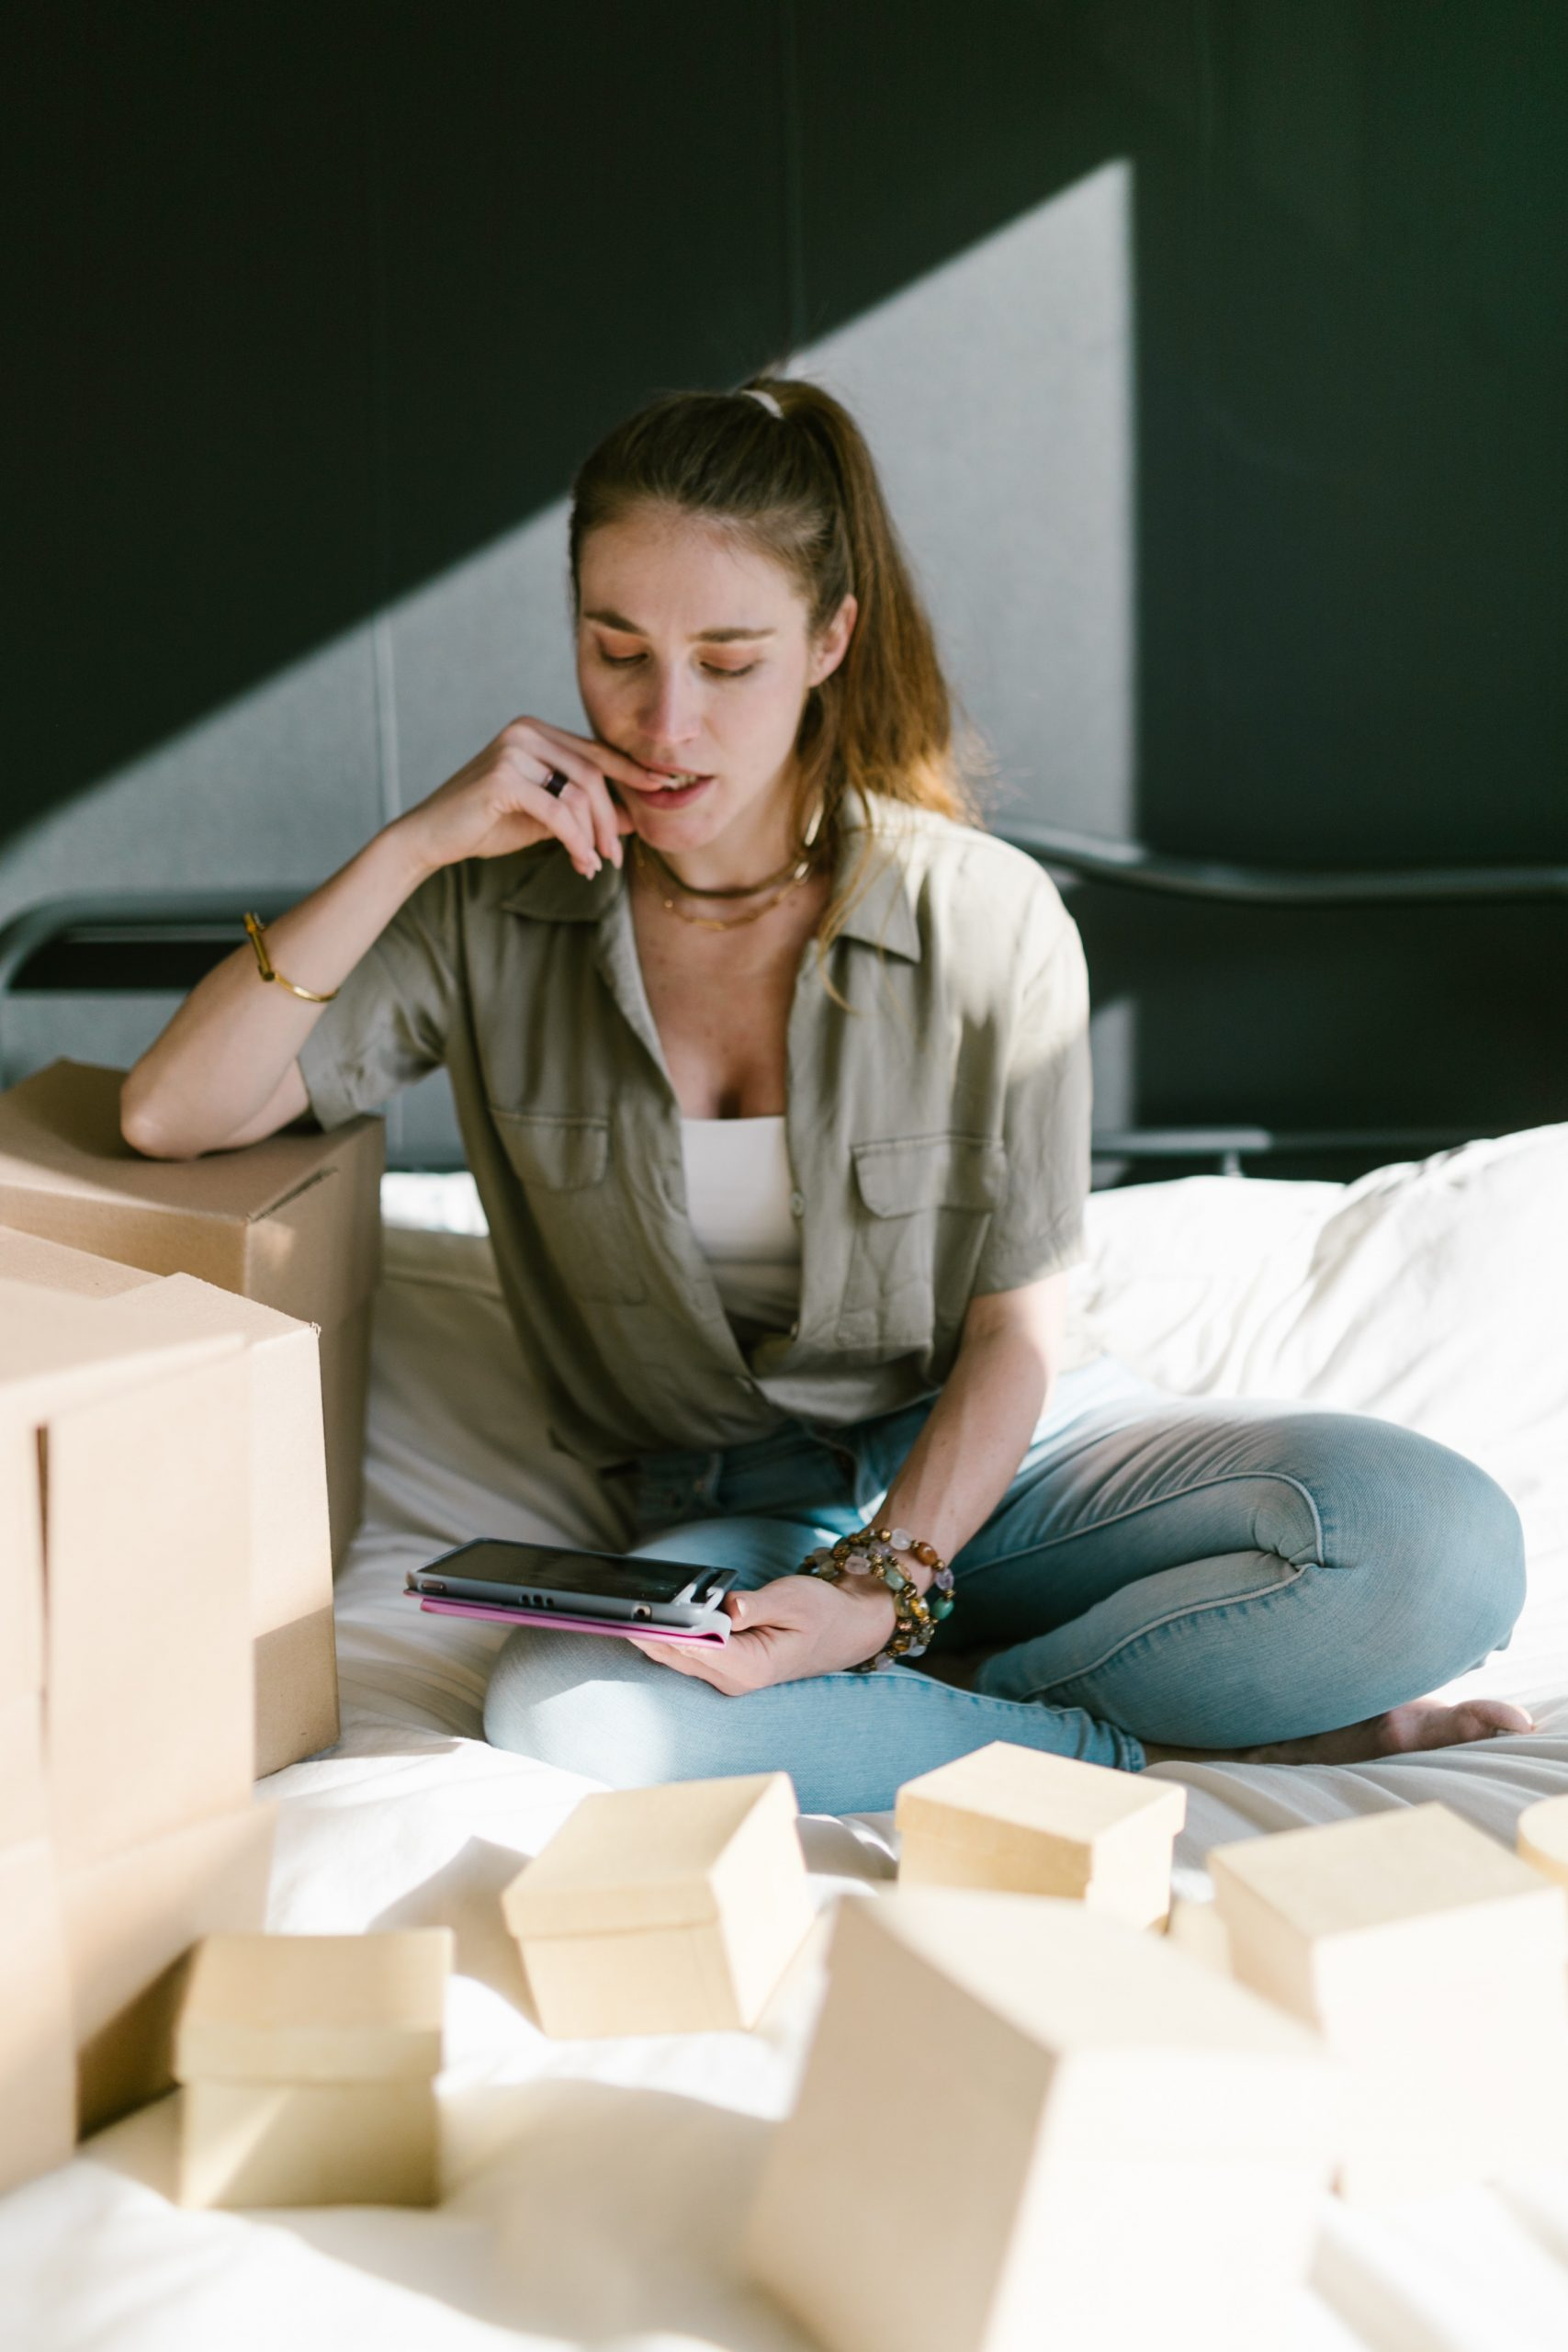 Lady sitting on bed surrounded by small brown boxes